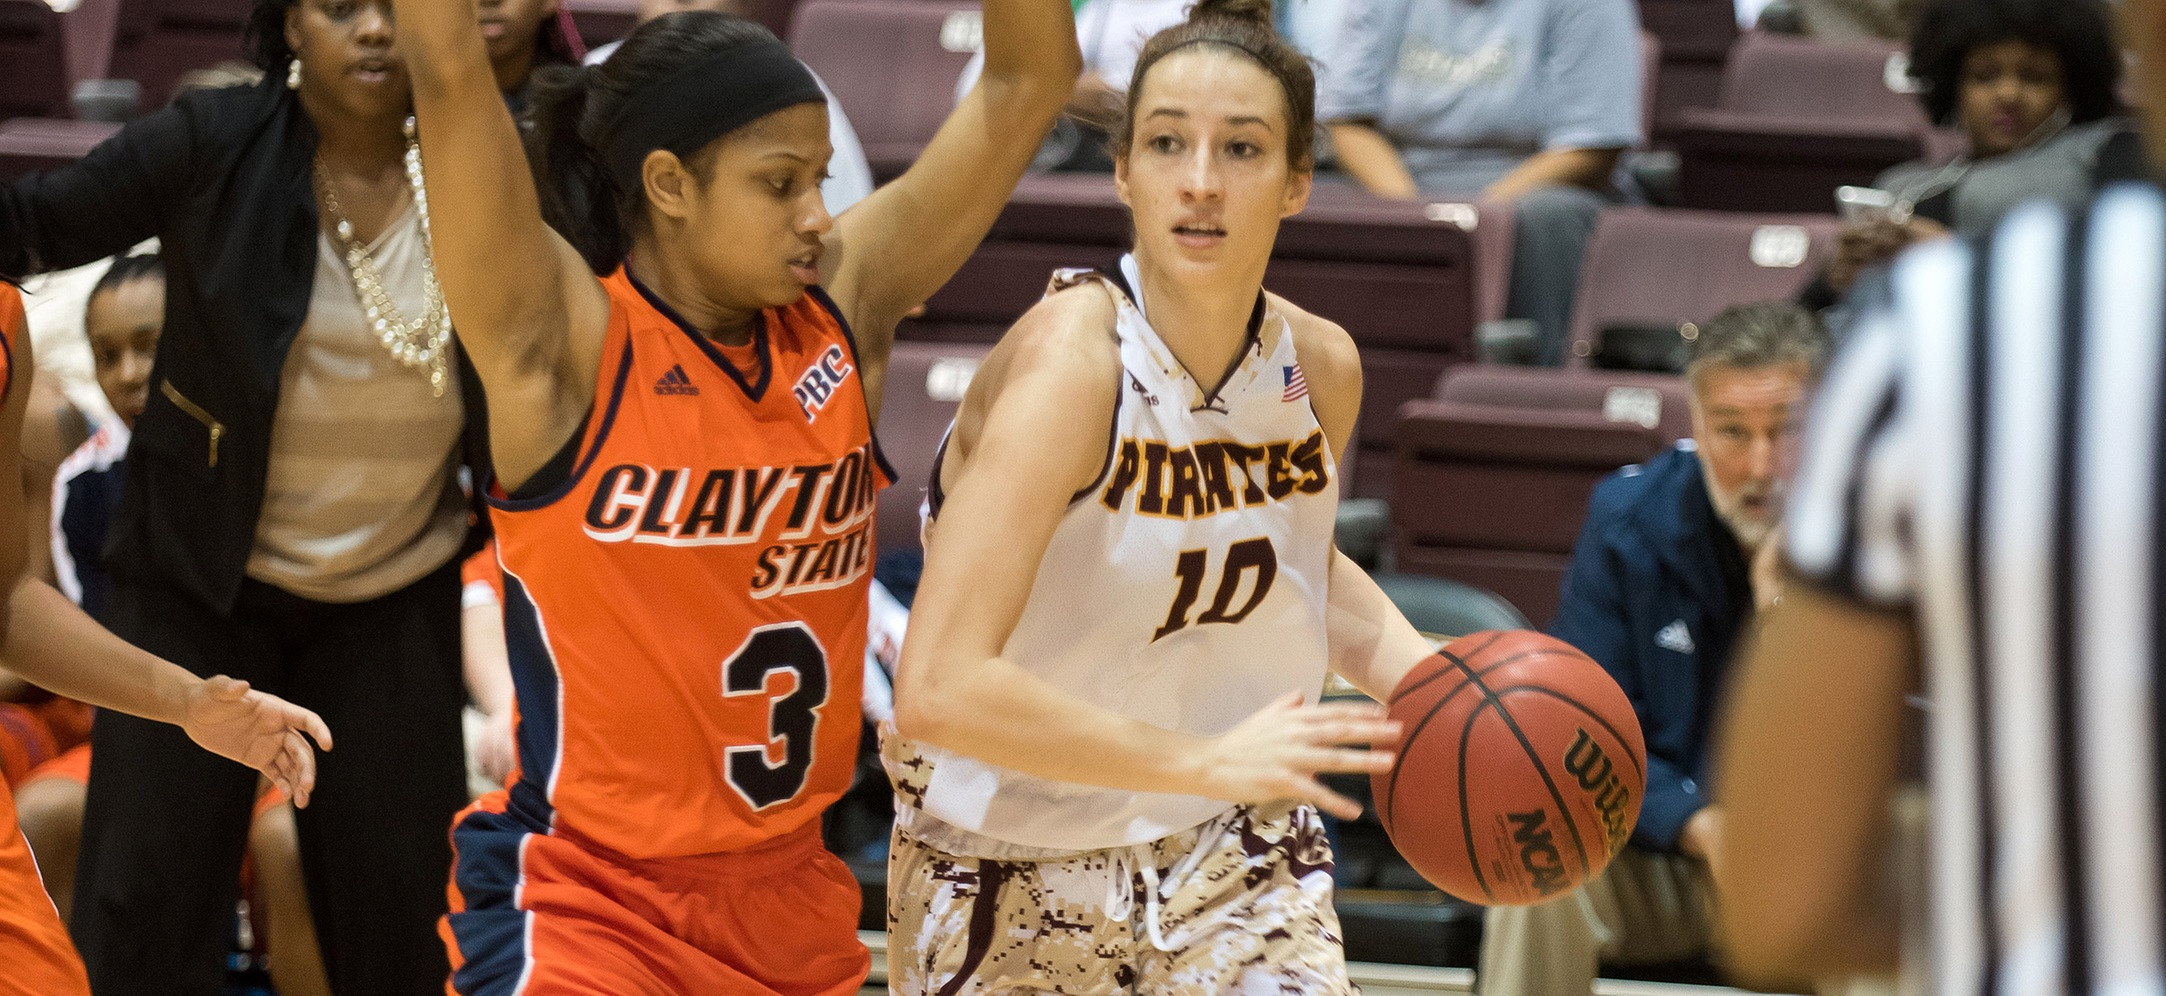 Flagler Halts 14-Game Slide With 71-61 Win Over Women's Basketball